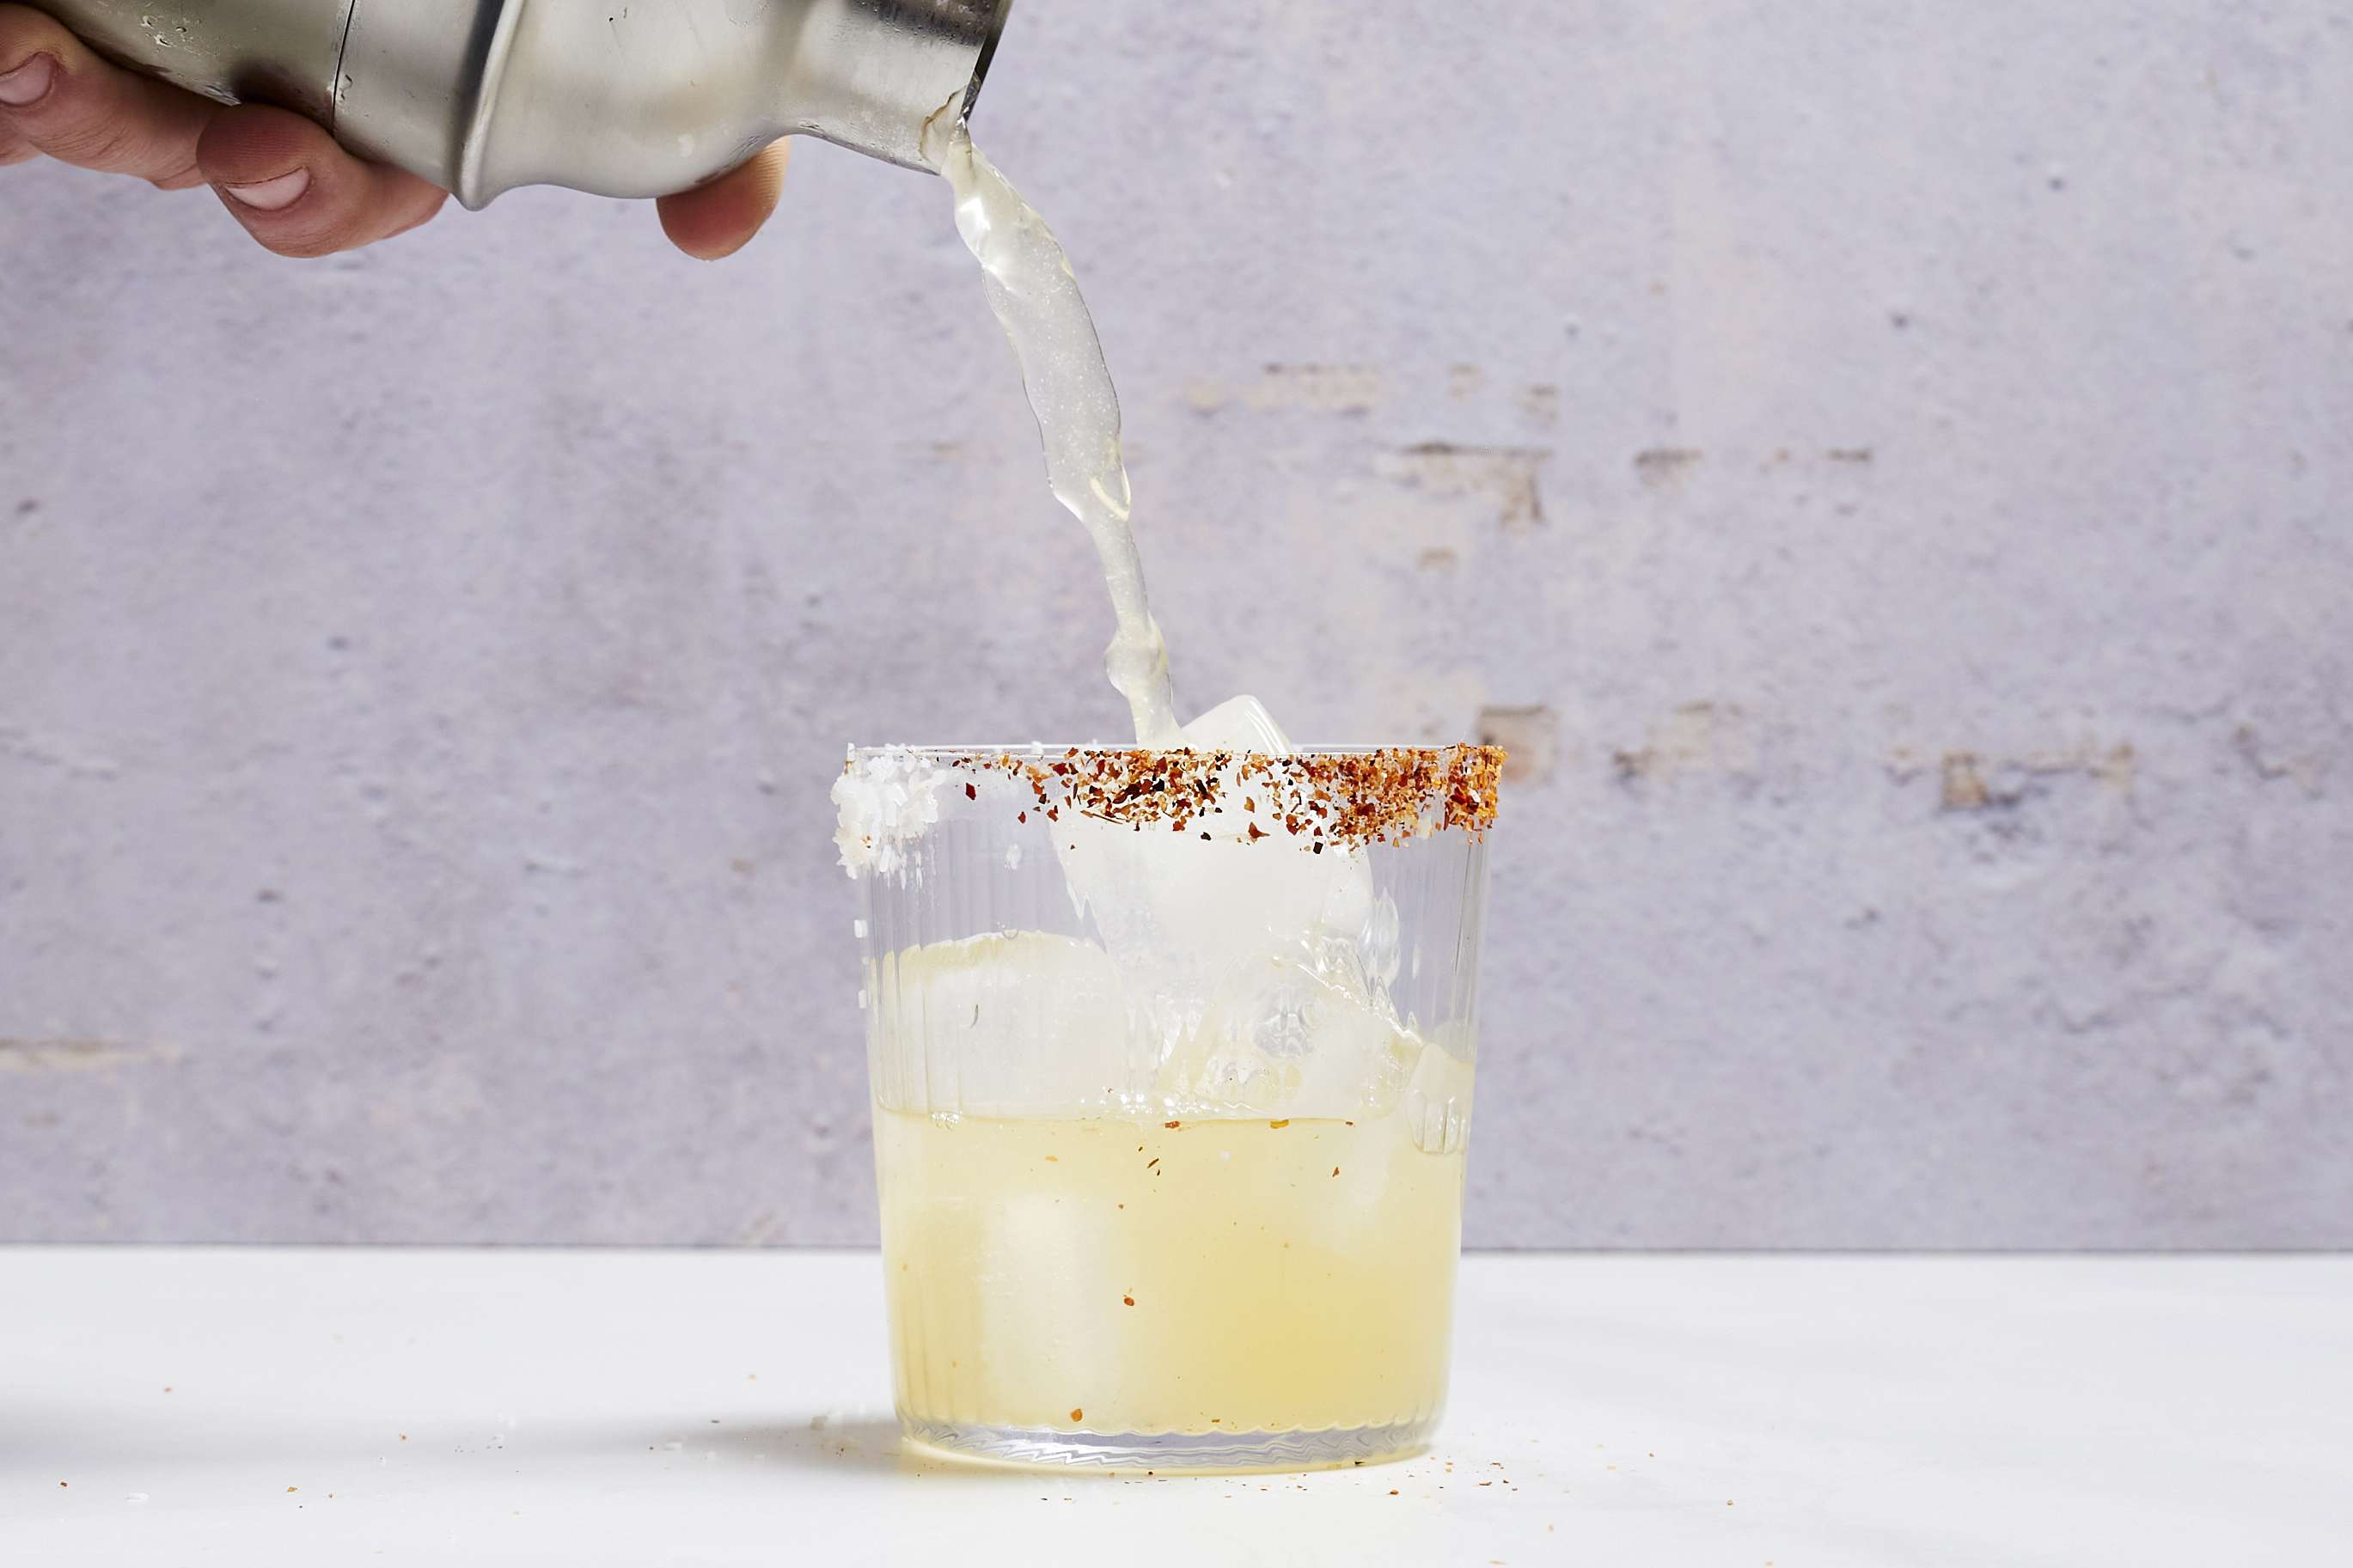 Strain cocktail into the ice-filled glass